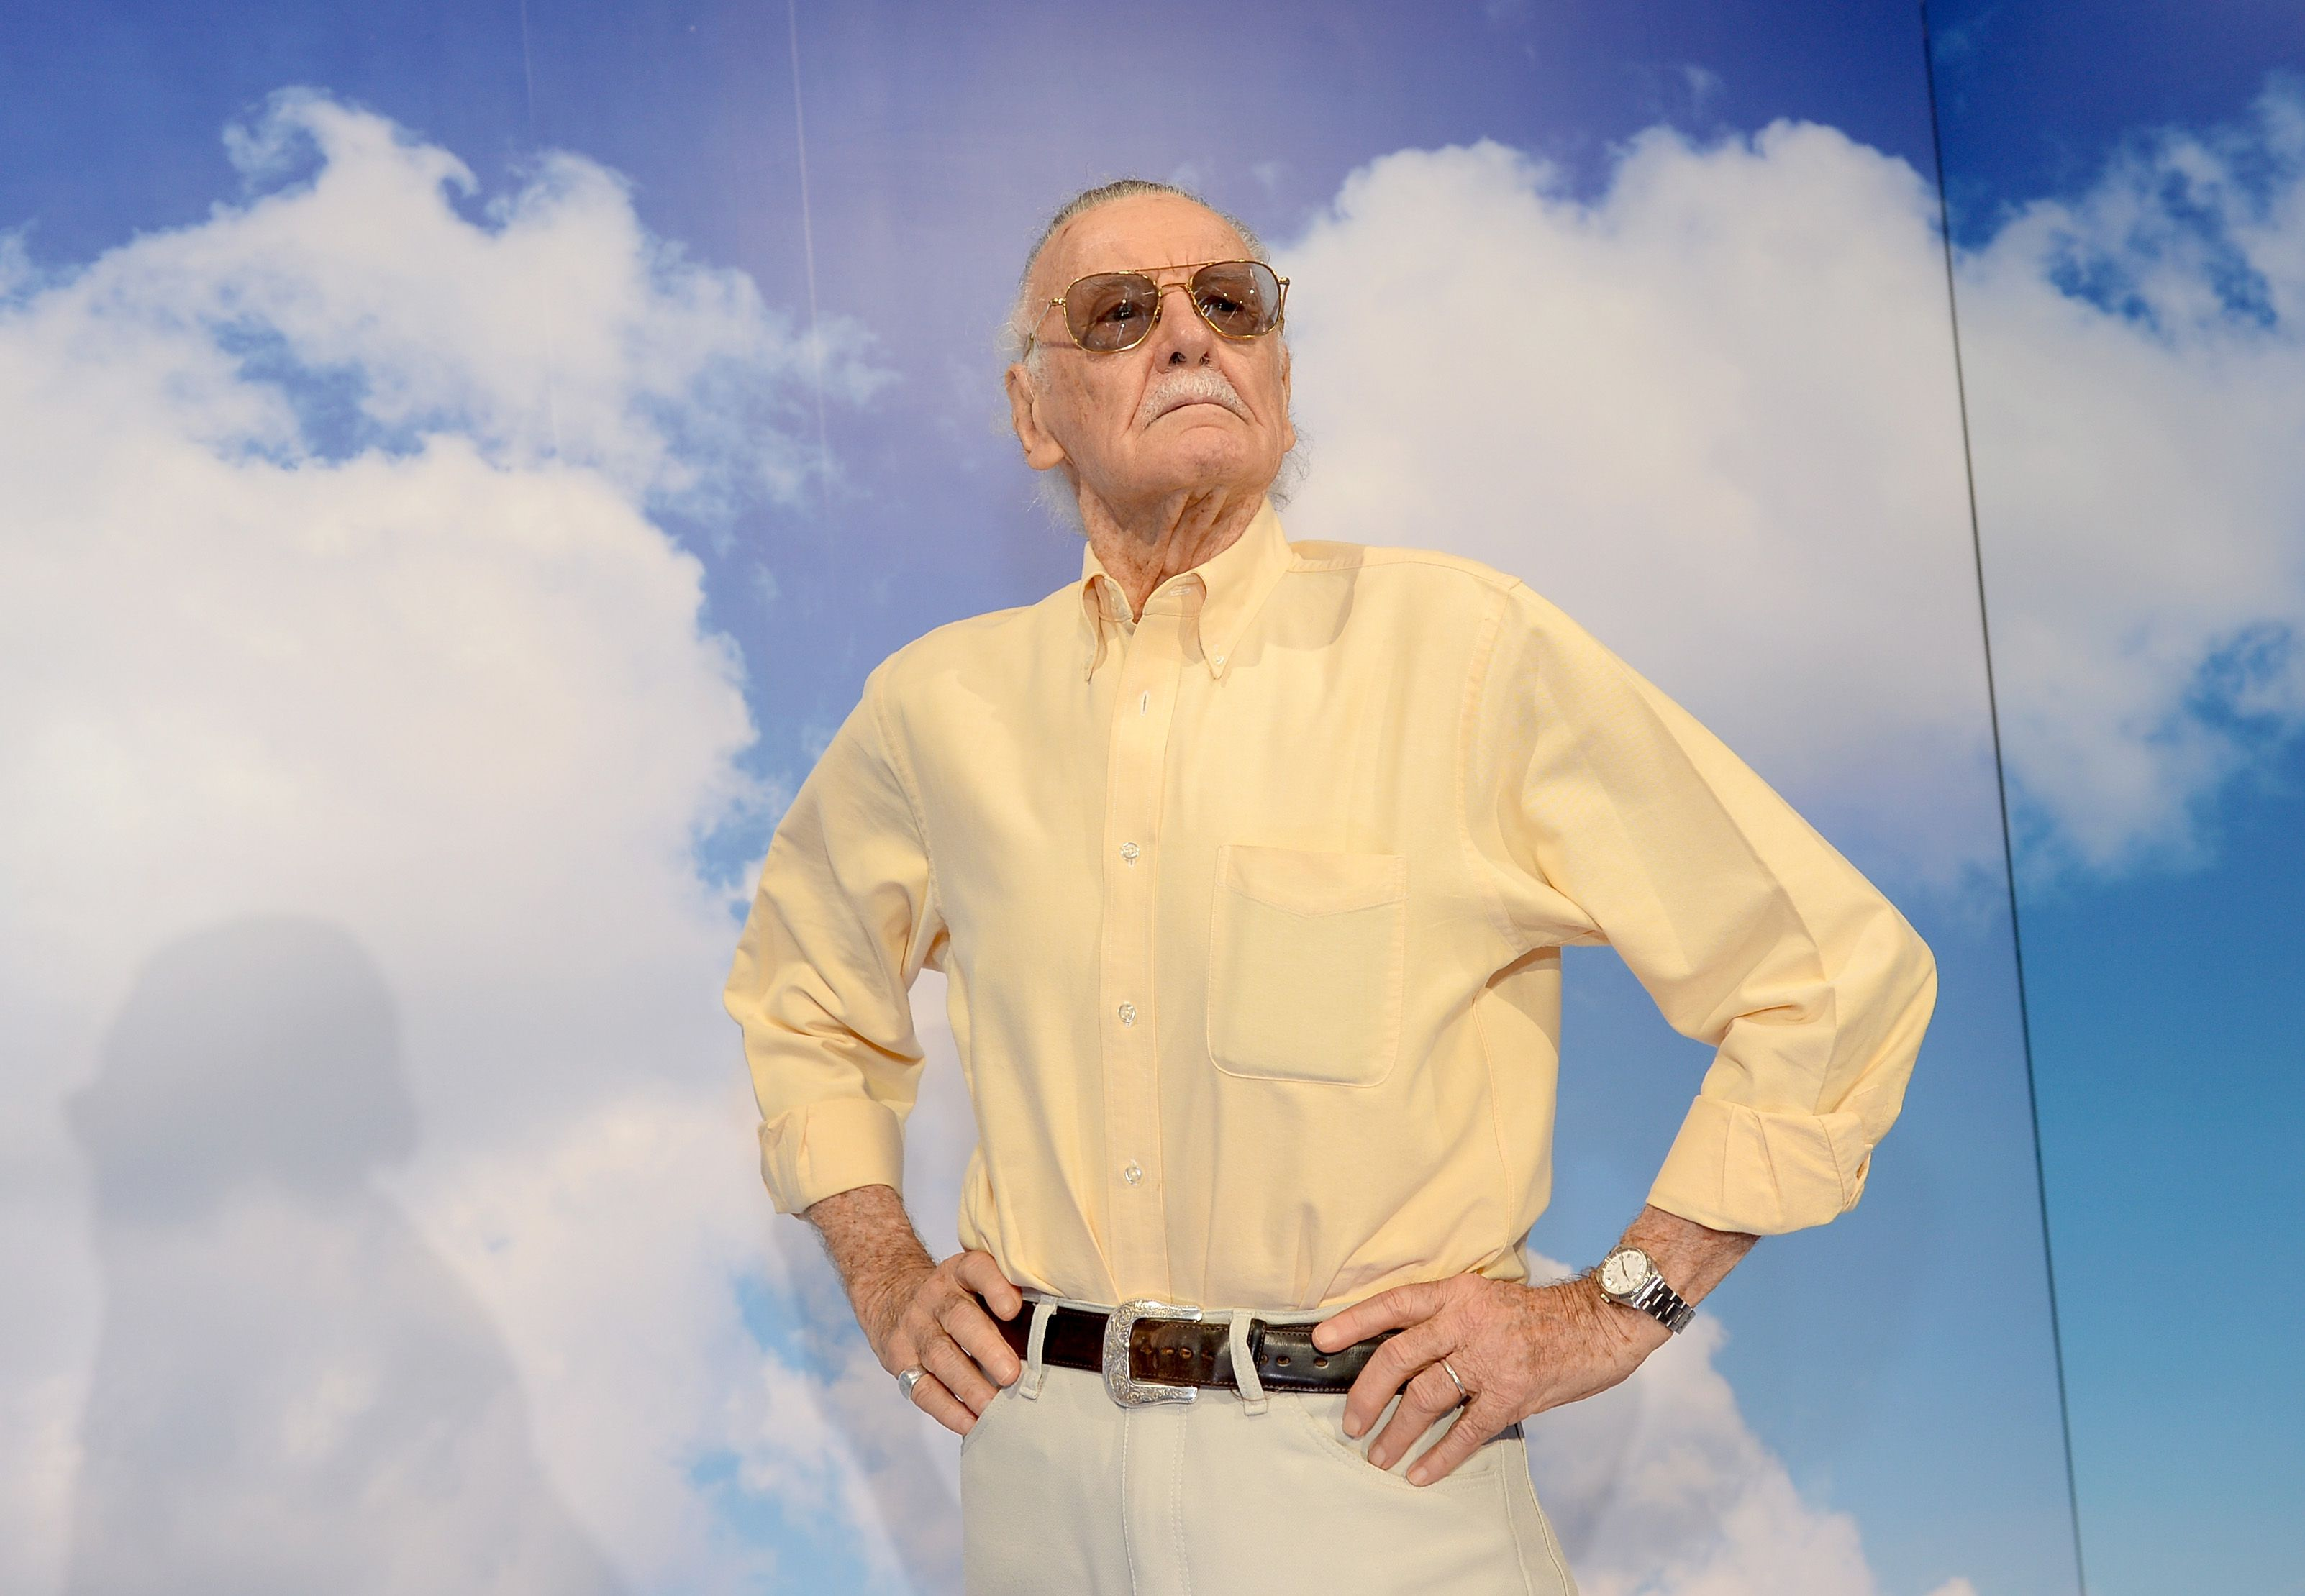 Stan Lee Made Frequent Cameo Appearances In Movies. Here Are His Most Iconic.